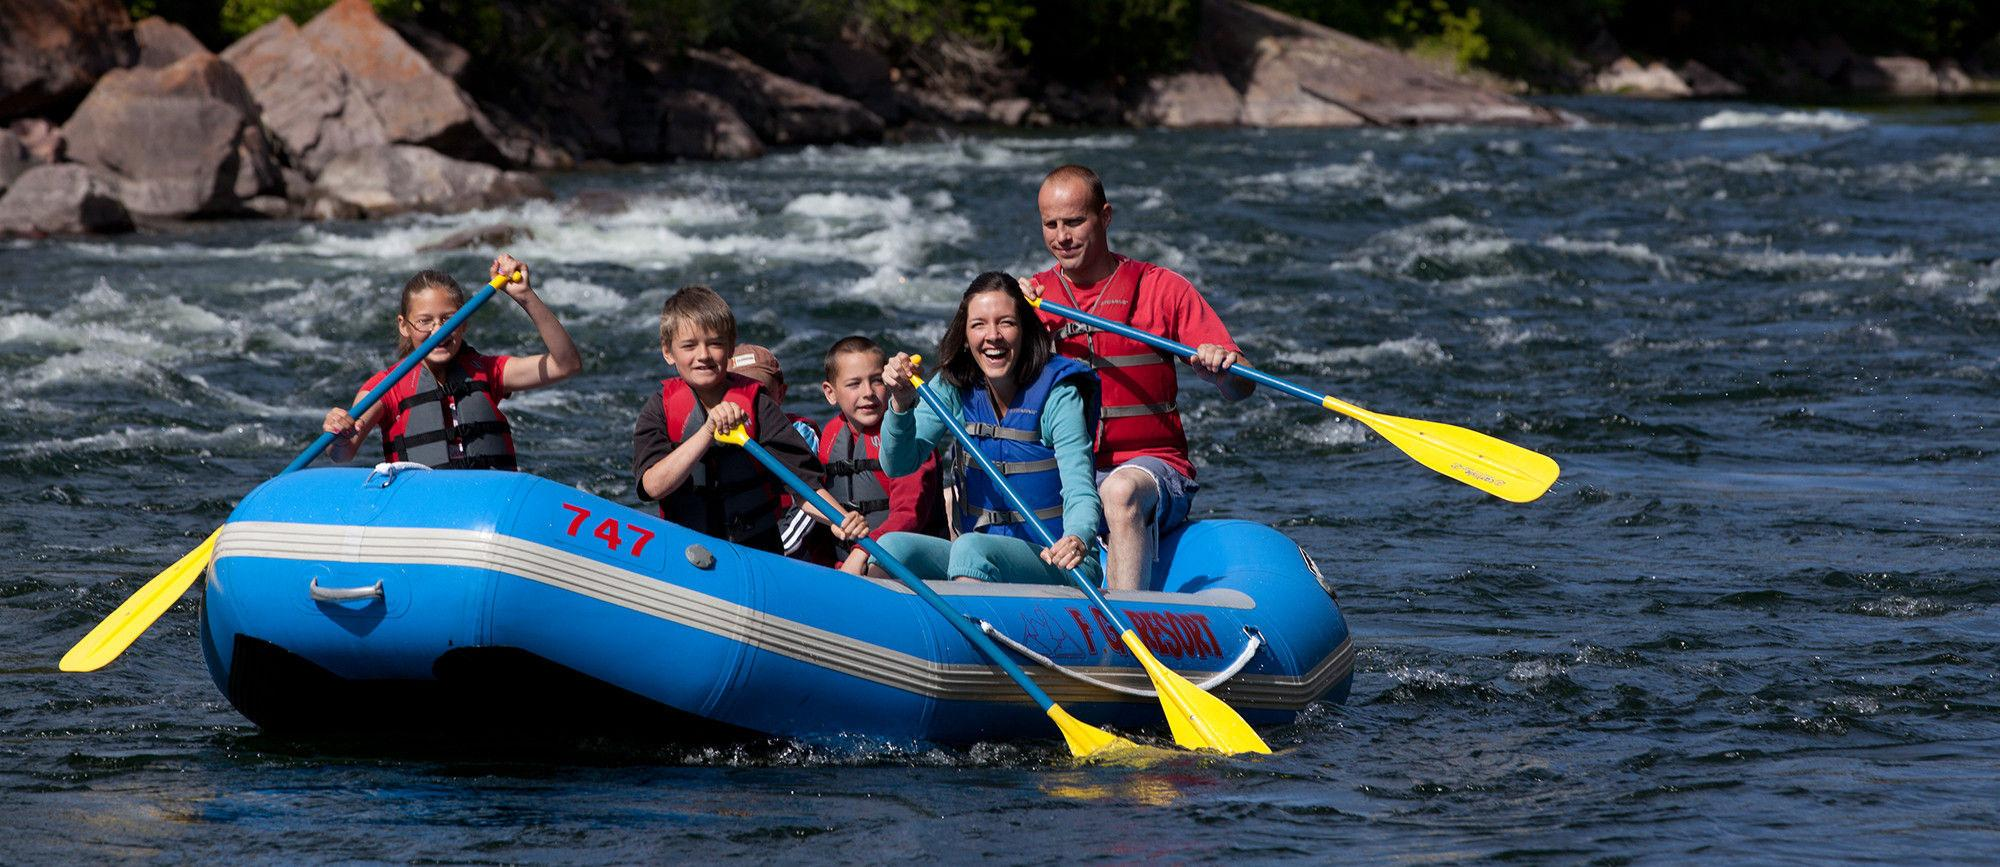 Flaming Gorge Resort - Rafting